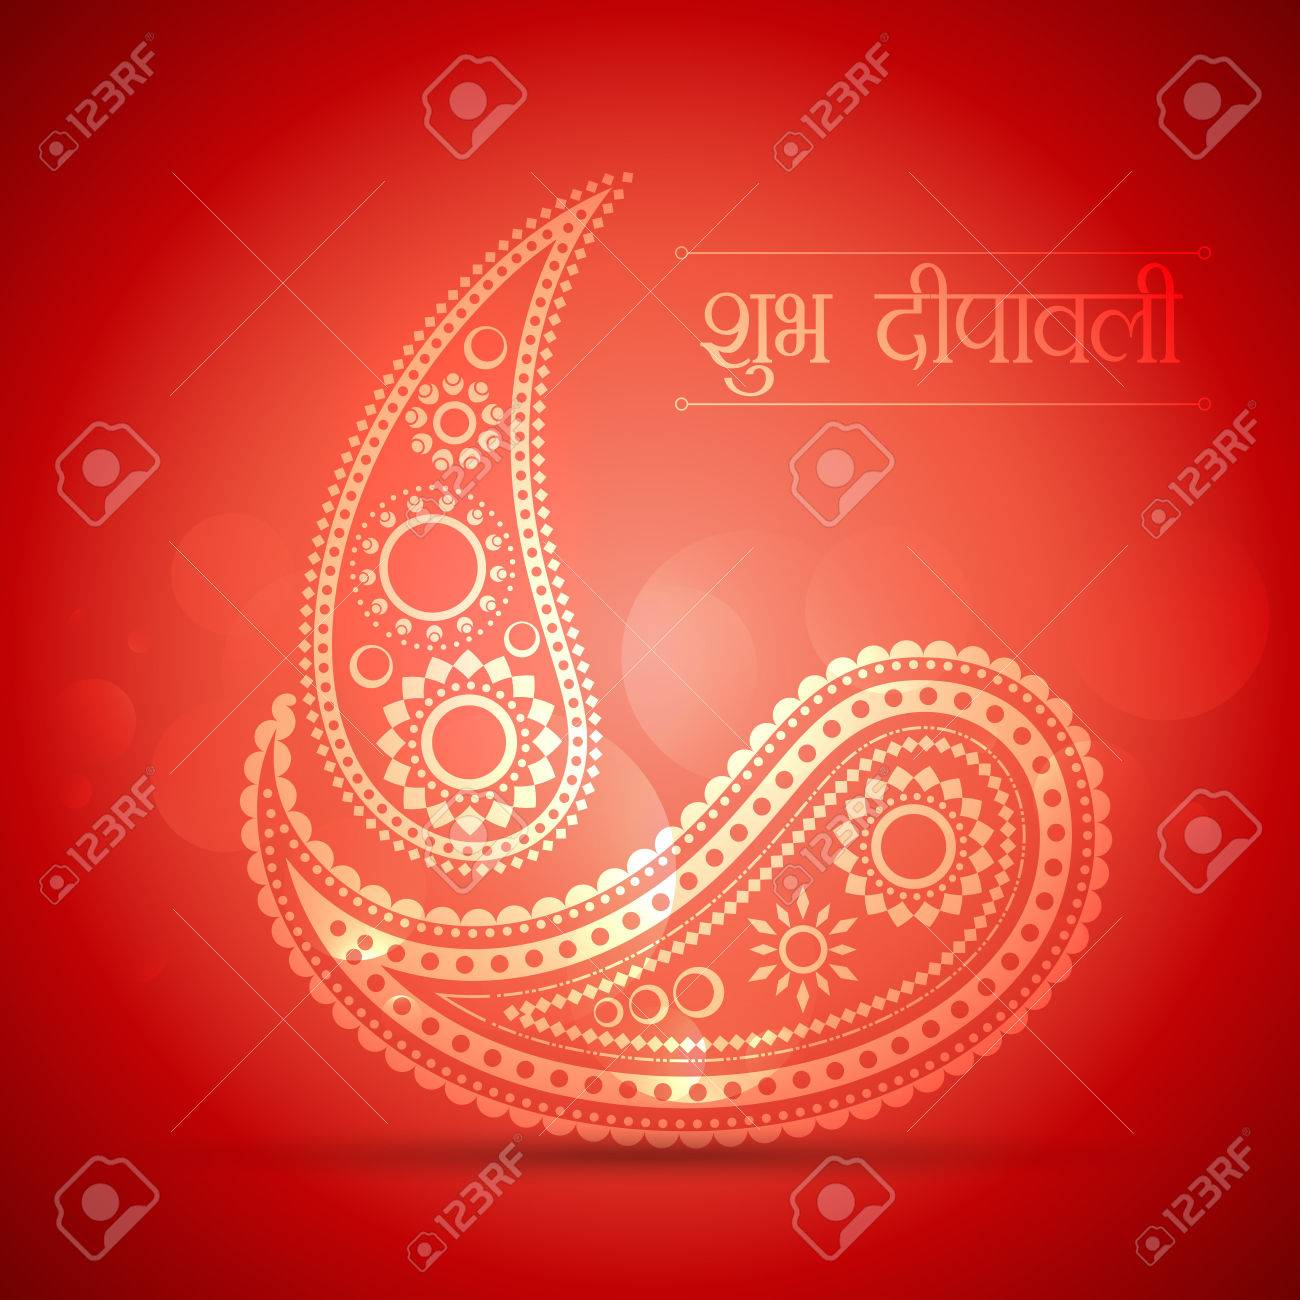 creative diwali diya made with paisley design Stock Vector - 22463928